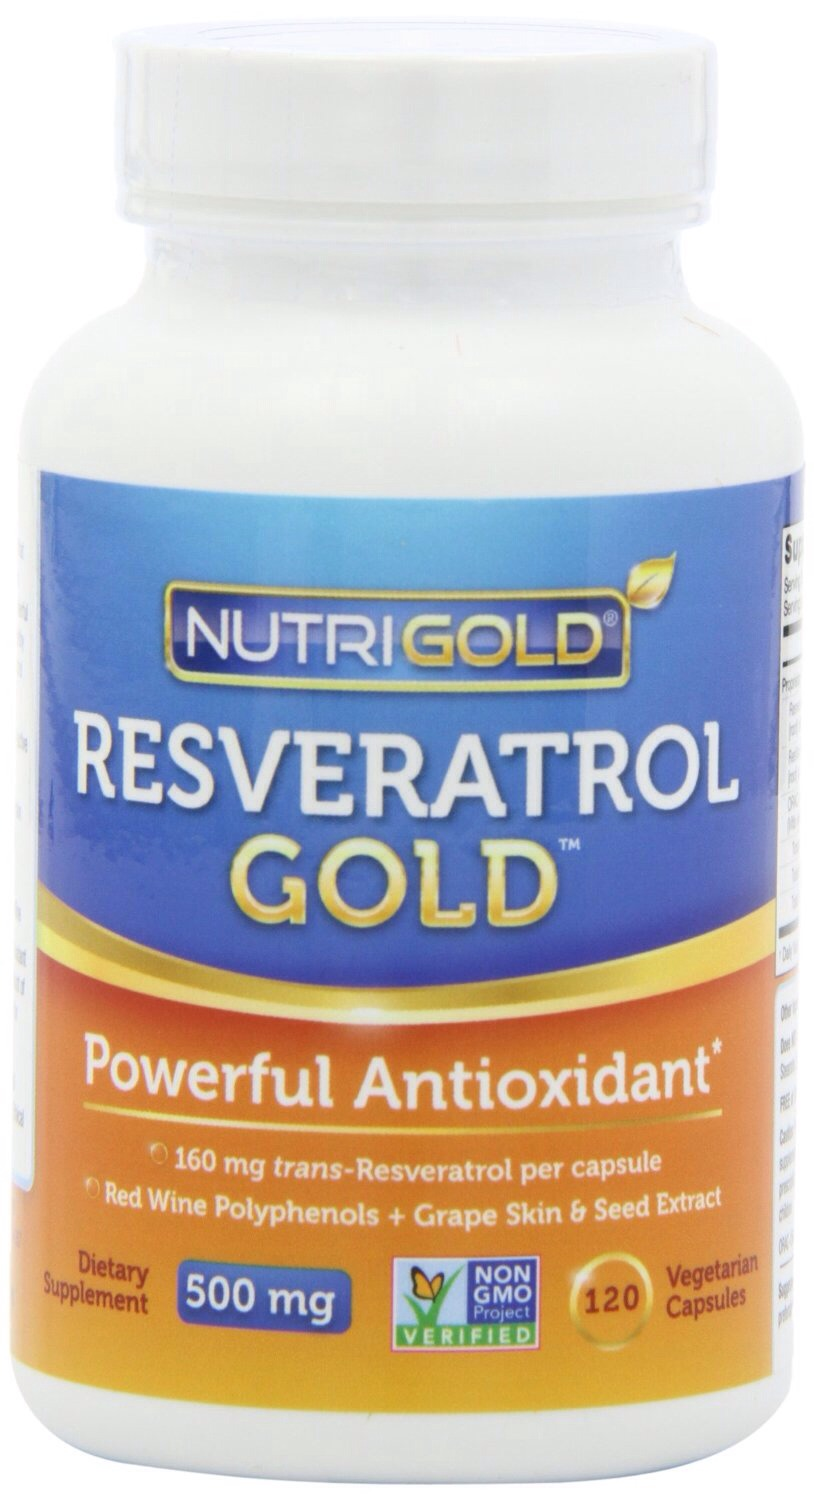 Resveratrol, a compound found in red grapes has been proven to slow the aging process by blocking the damaging effects of the sun. It also boosts heart health and may promote longevity. Take 20mg once daily (recommended).